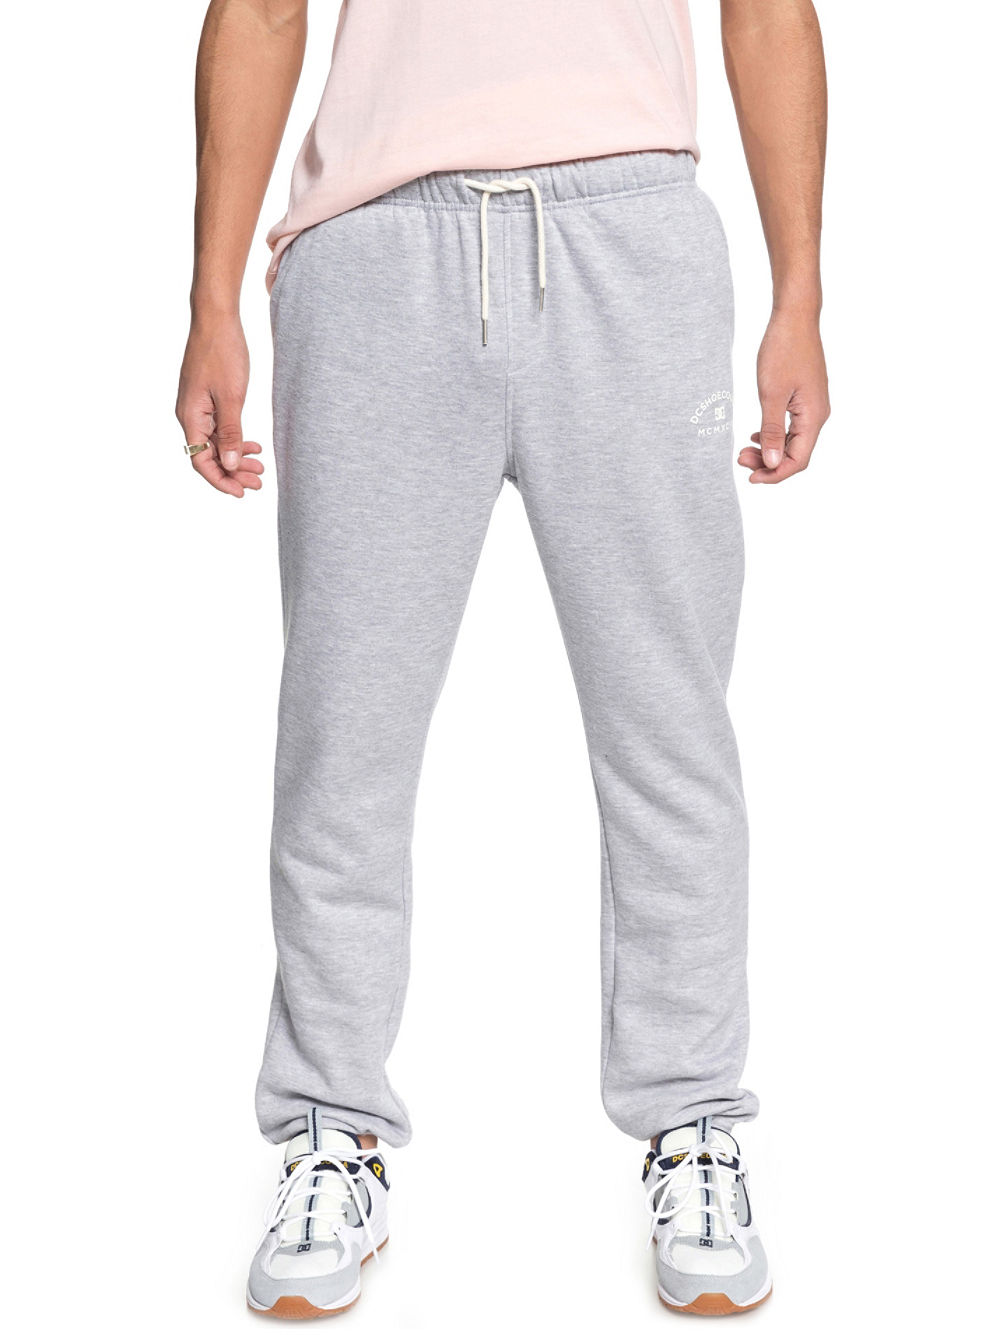 Rebel Jogging Pants